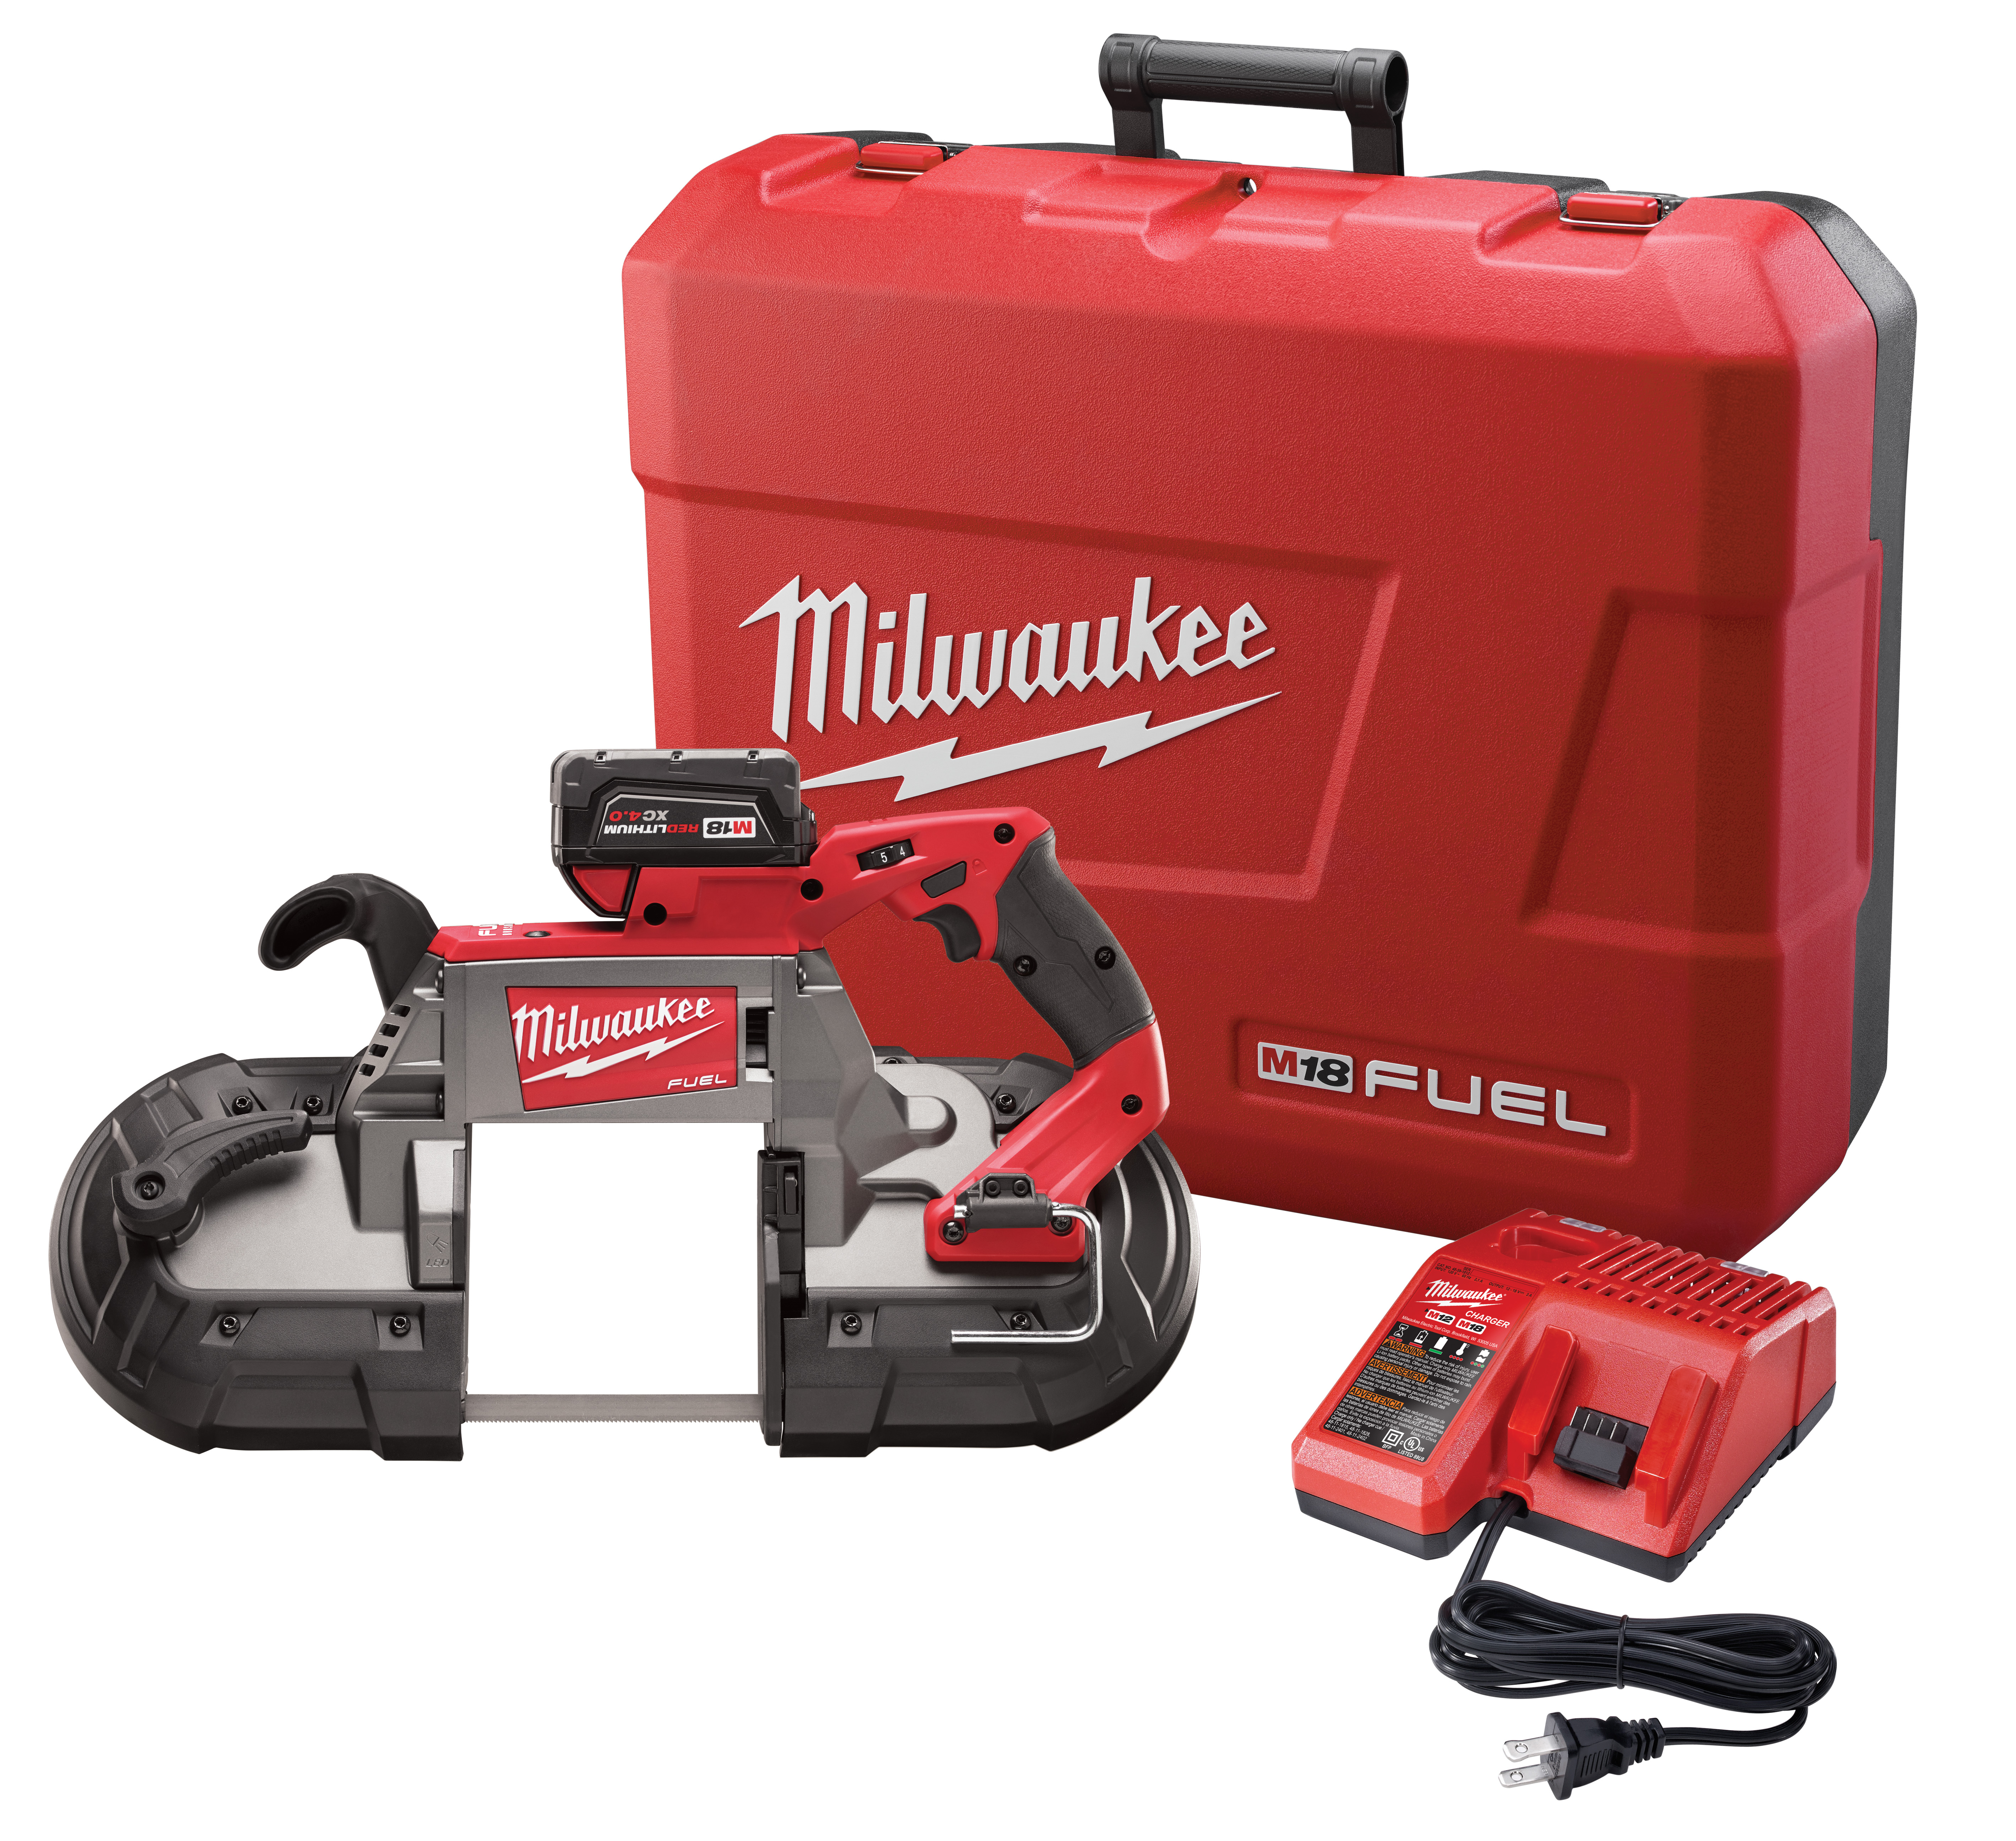 Milwaukee® M18™ FUEL™ 2729-21 Cordless Band Saw Kit, 5 in Cutting, 44.875 in L x 0.5 in W x 0.02 in THK Blade, 18 VDC, 5 Ah Lithium-Ion Battery